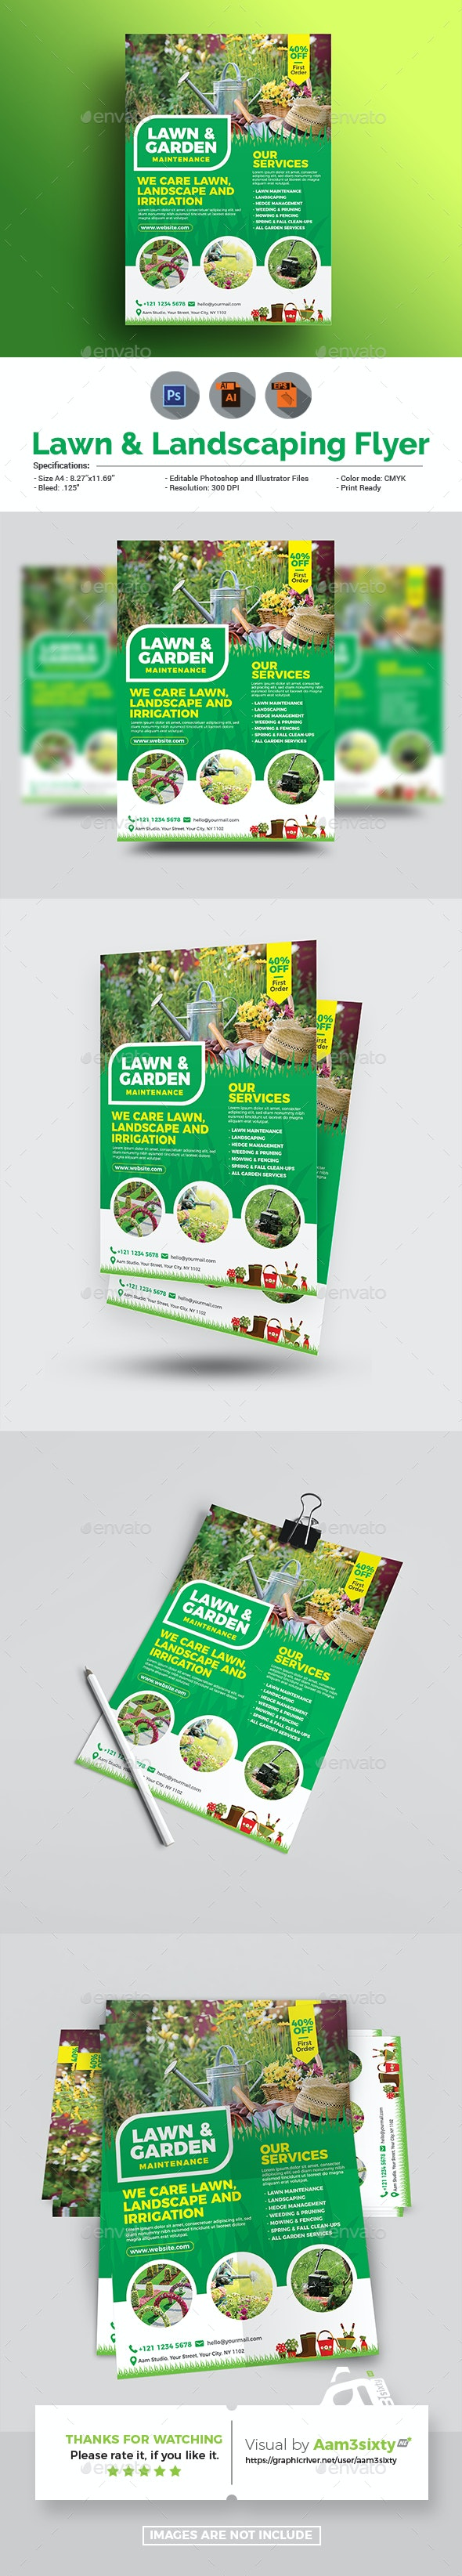 Lawn and Landscaping Flyer - Commerce Flyers